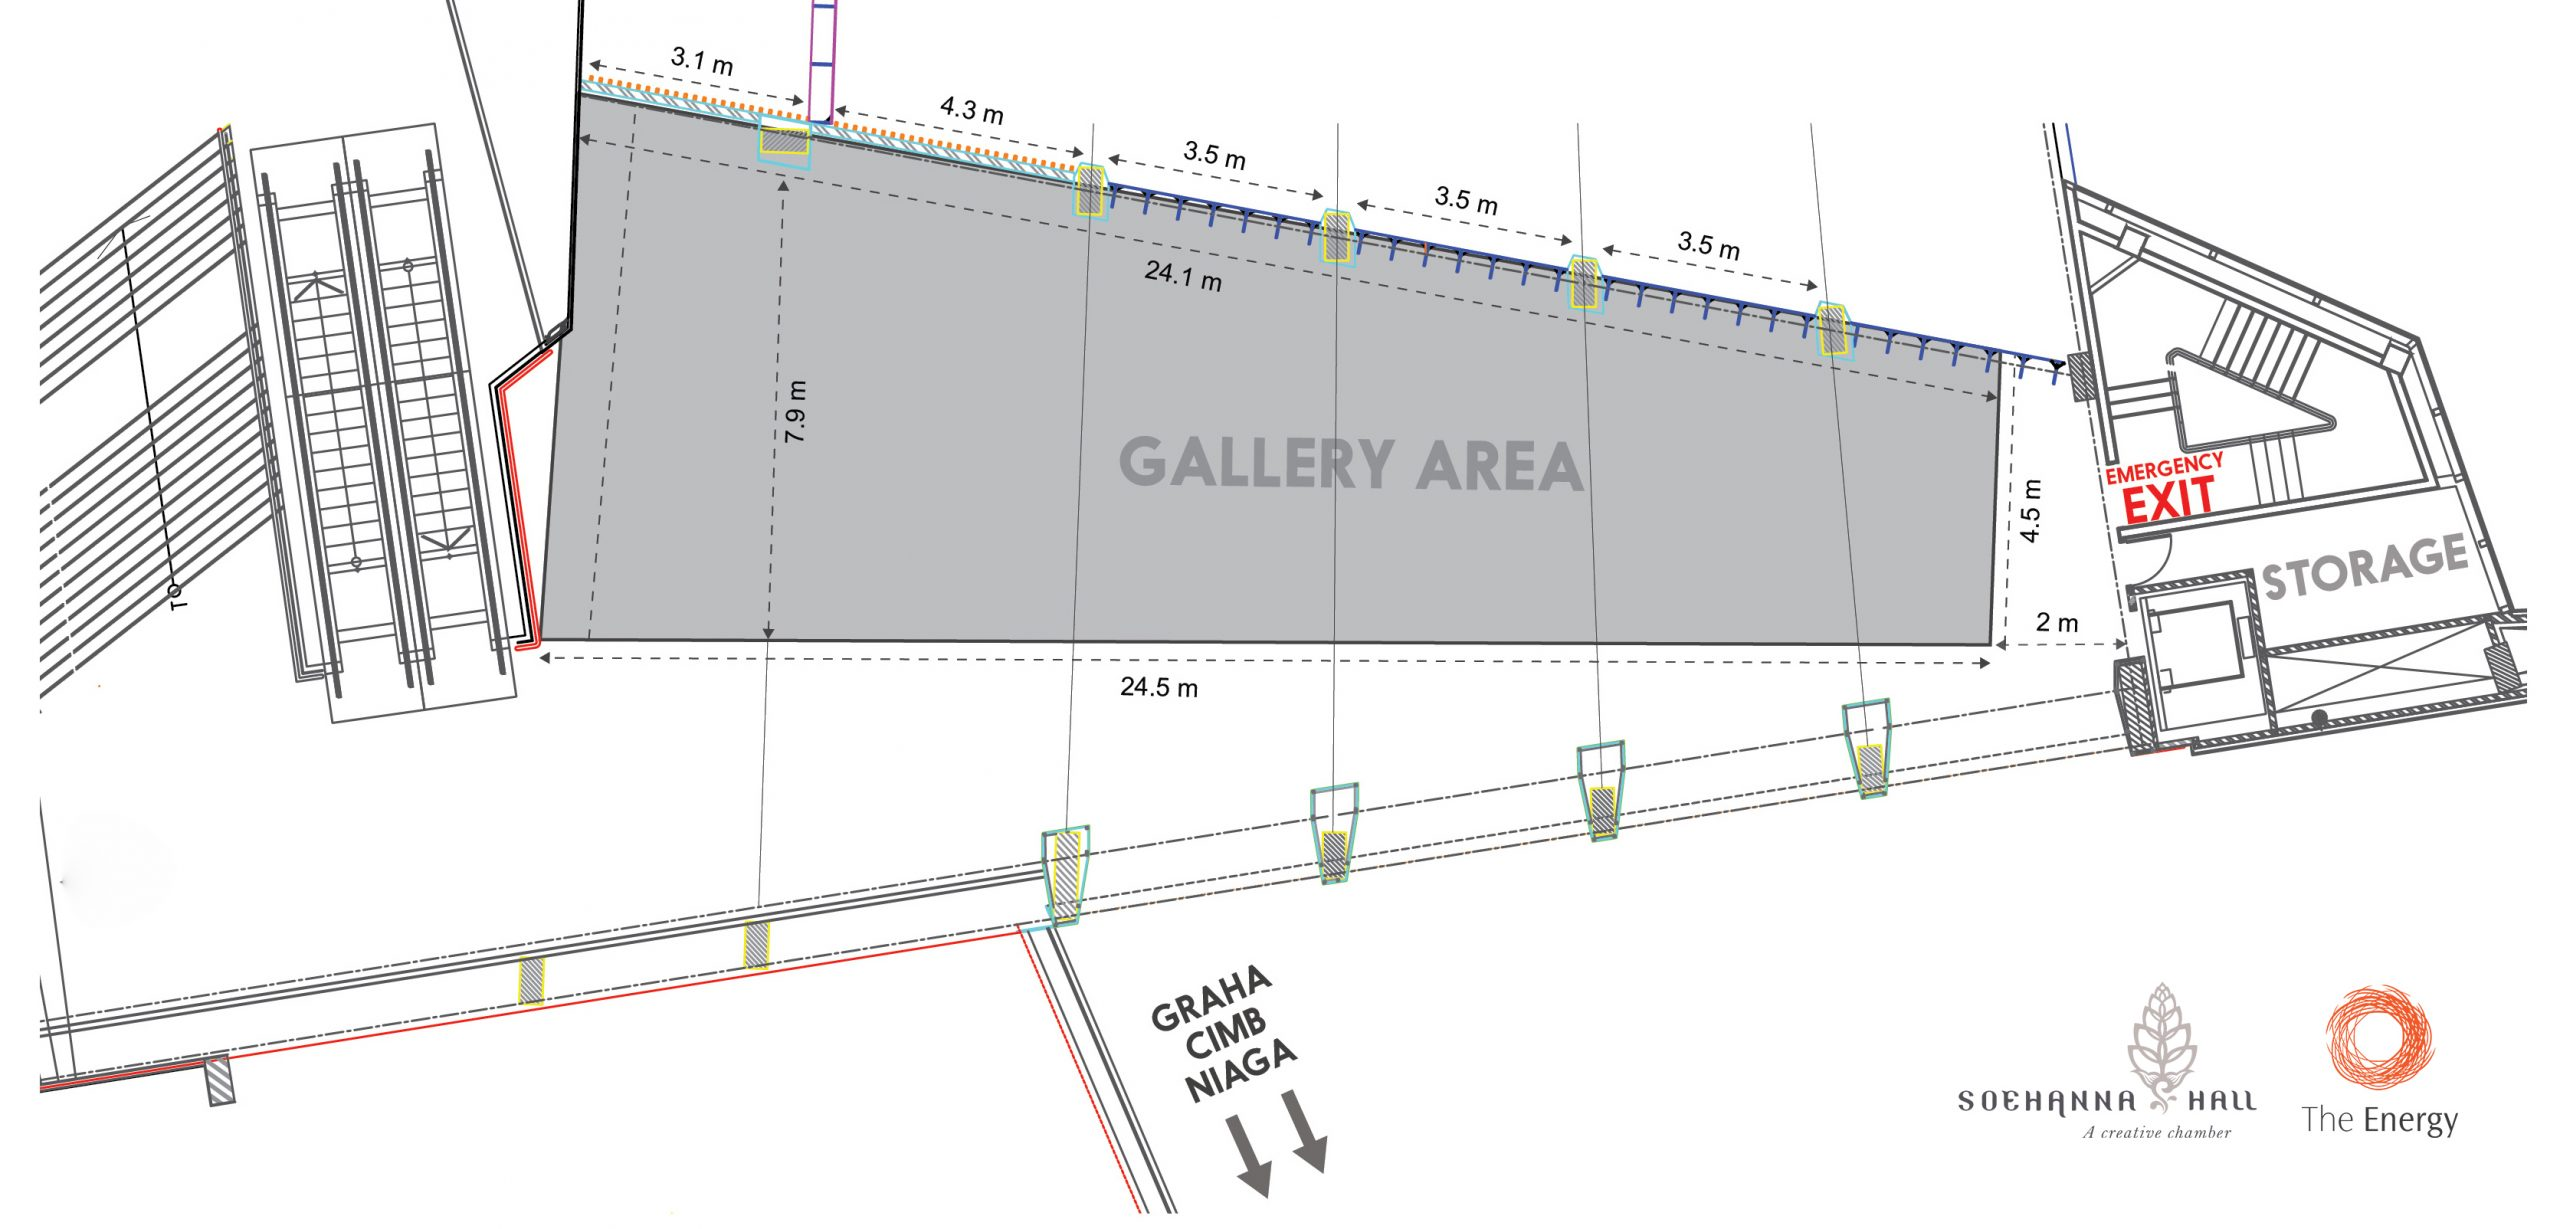 Gallery Area Layout